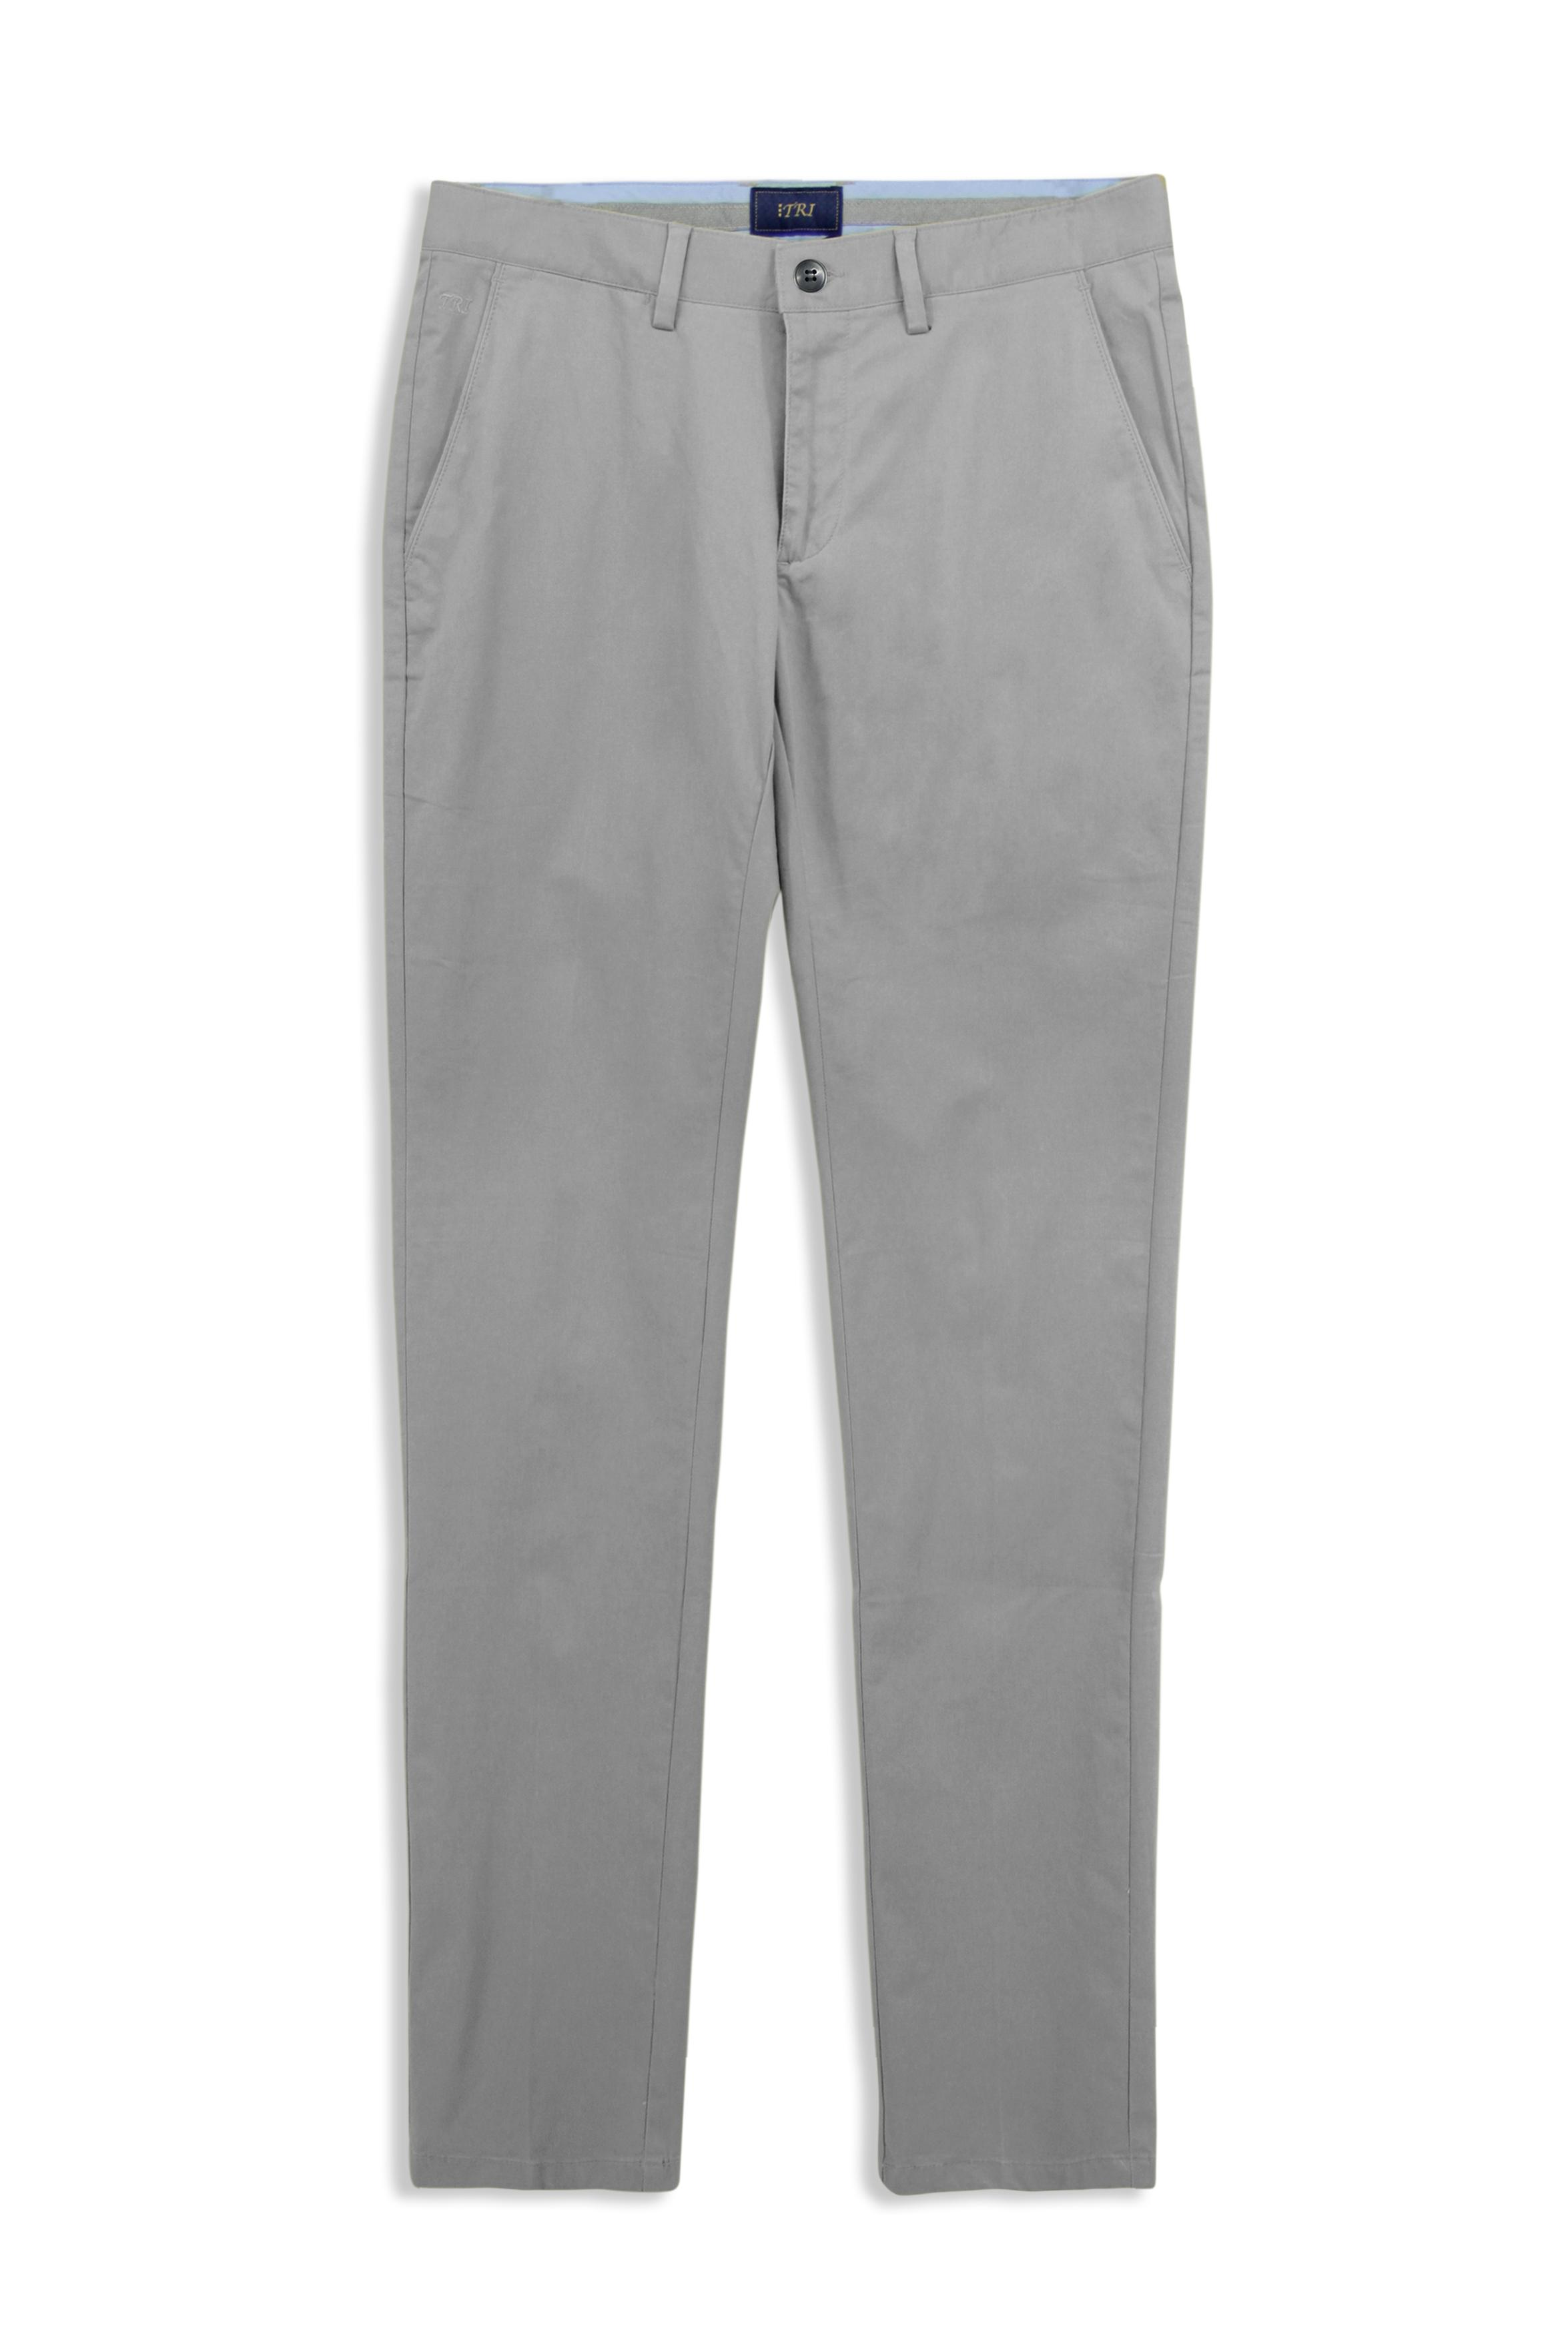 TRI GOLD LABEL PANT (GPC-09)